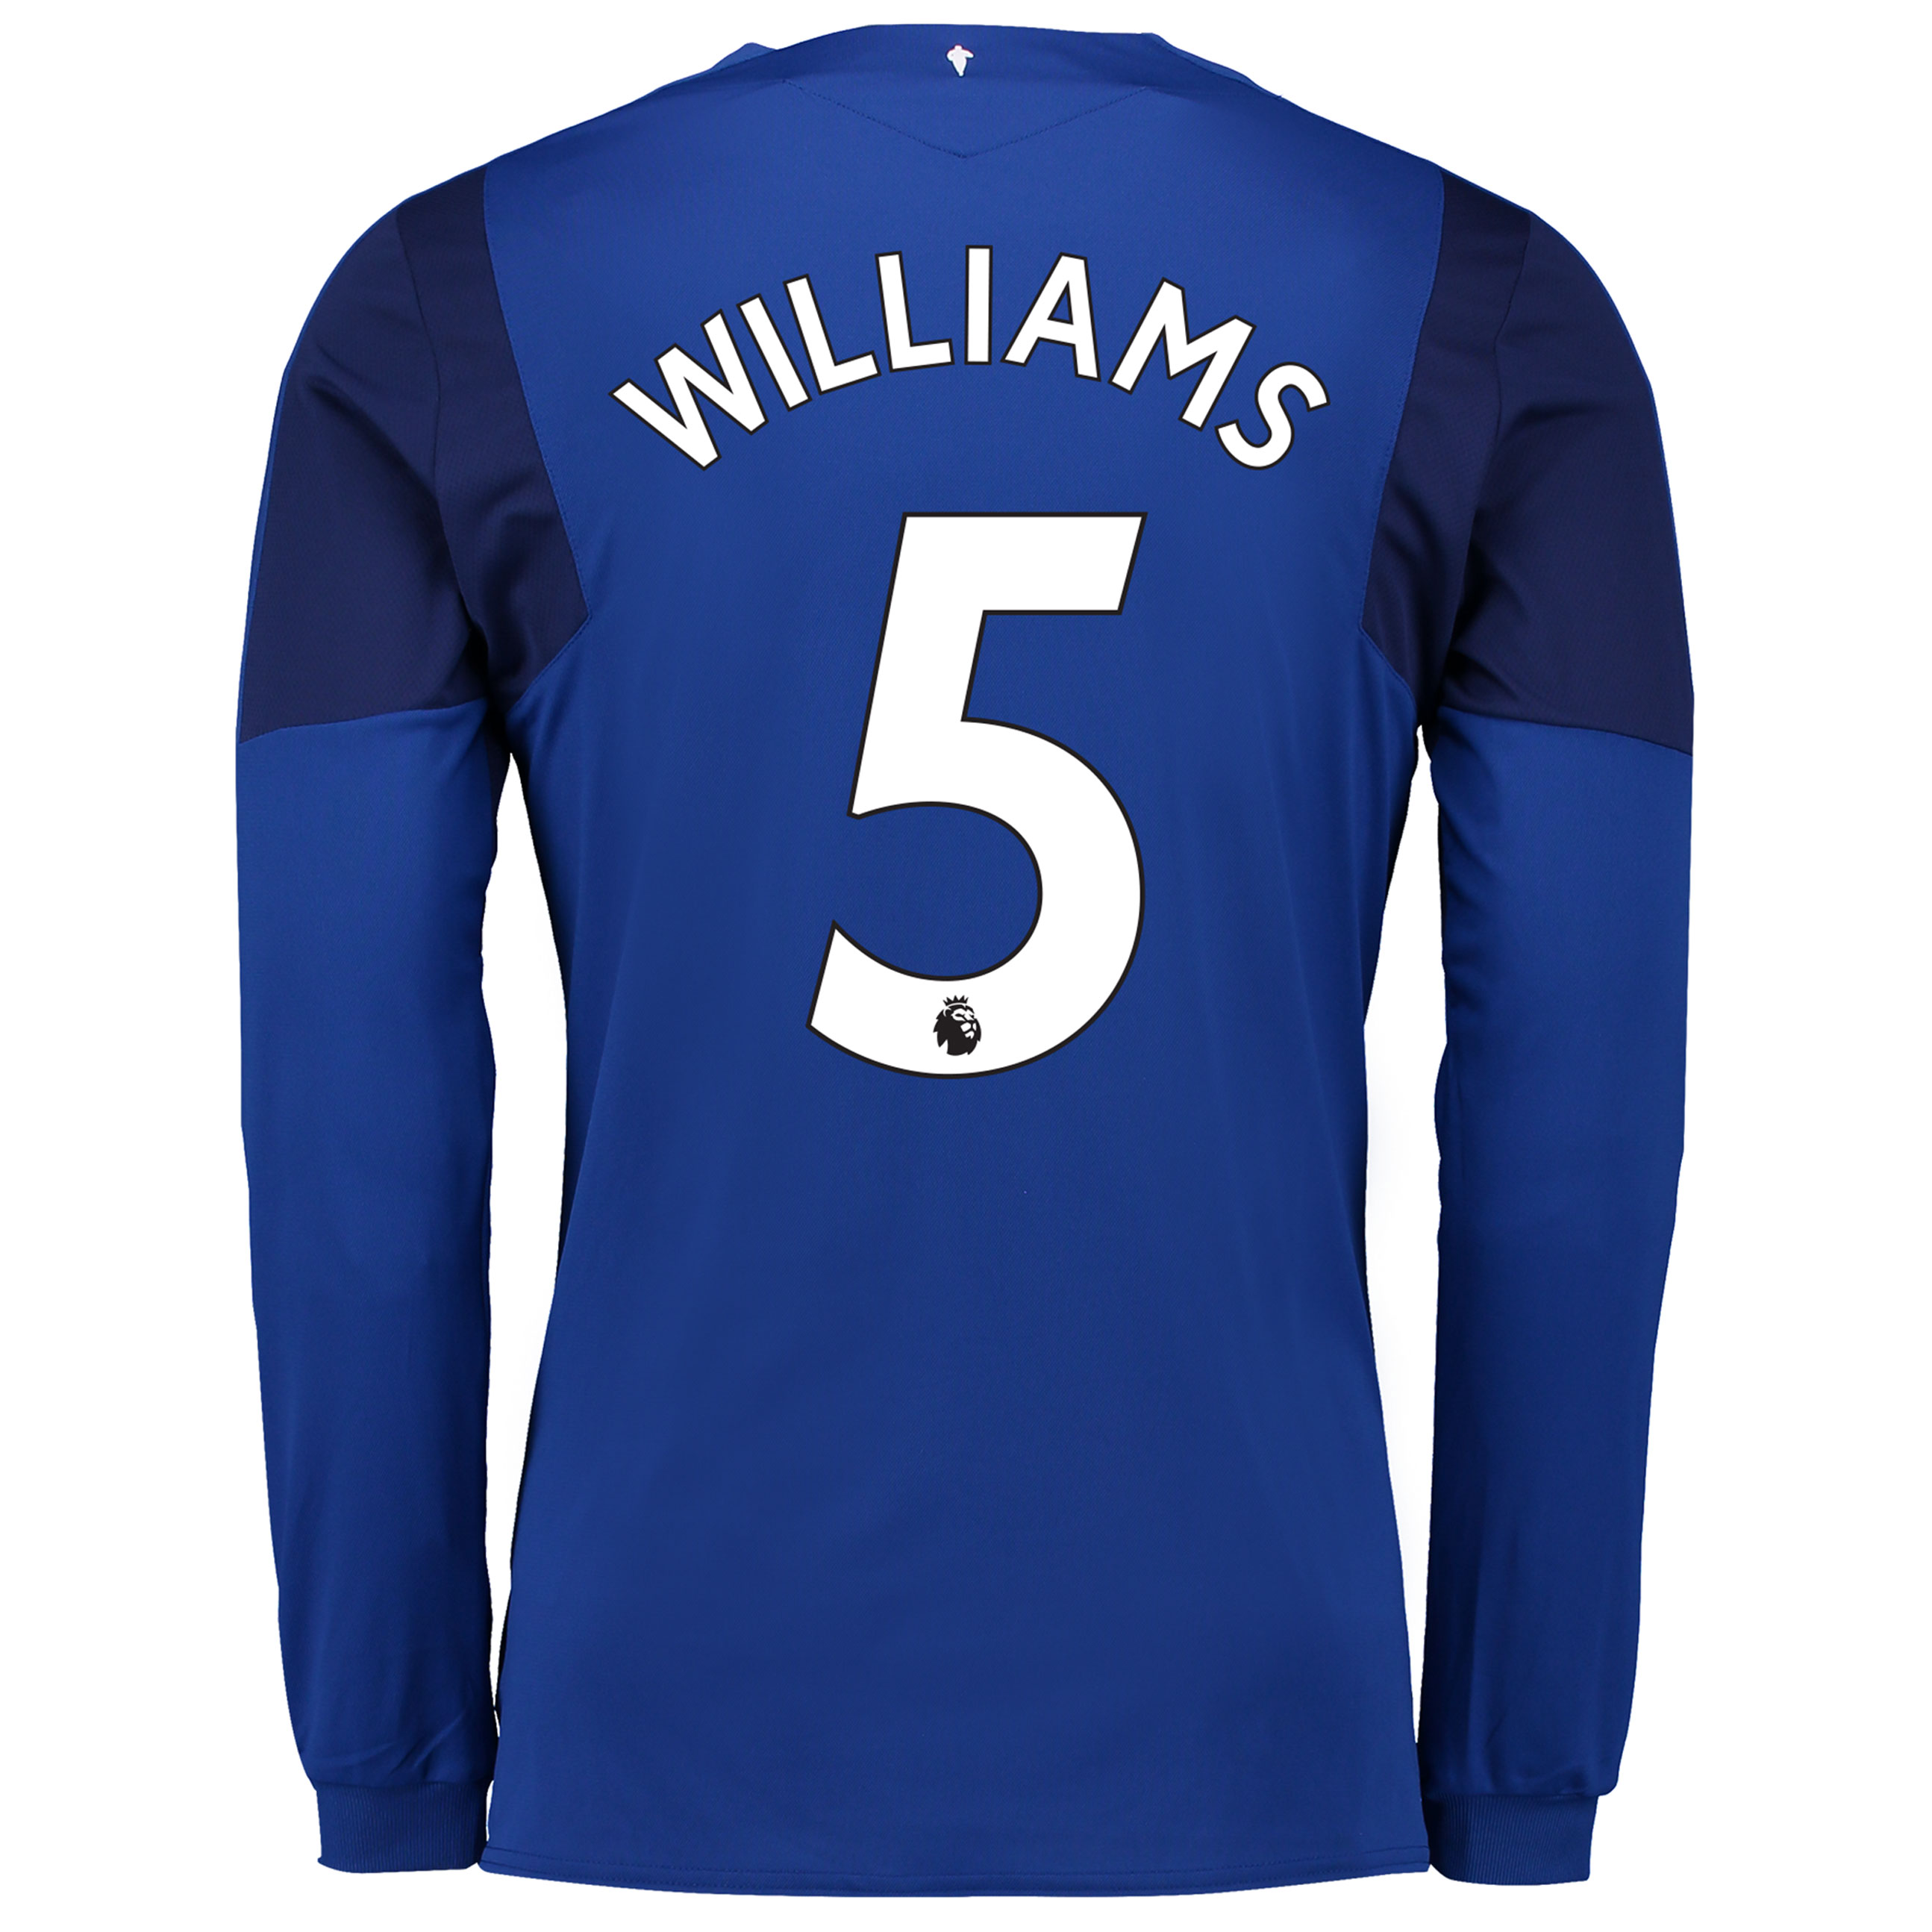 Everton Home Shirt 2017/18 - Junior - Long Sleeved with Williams 5 pri